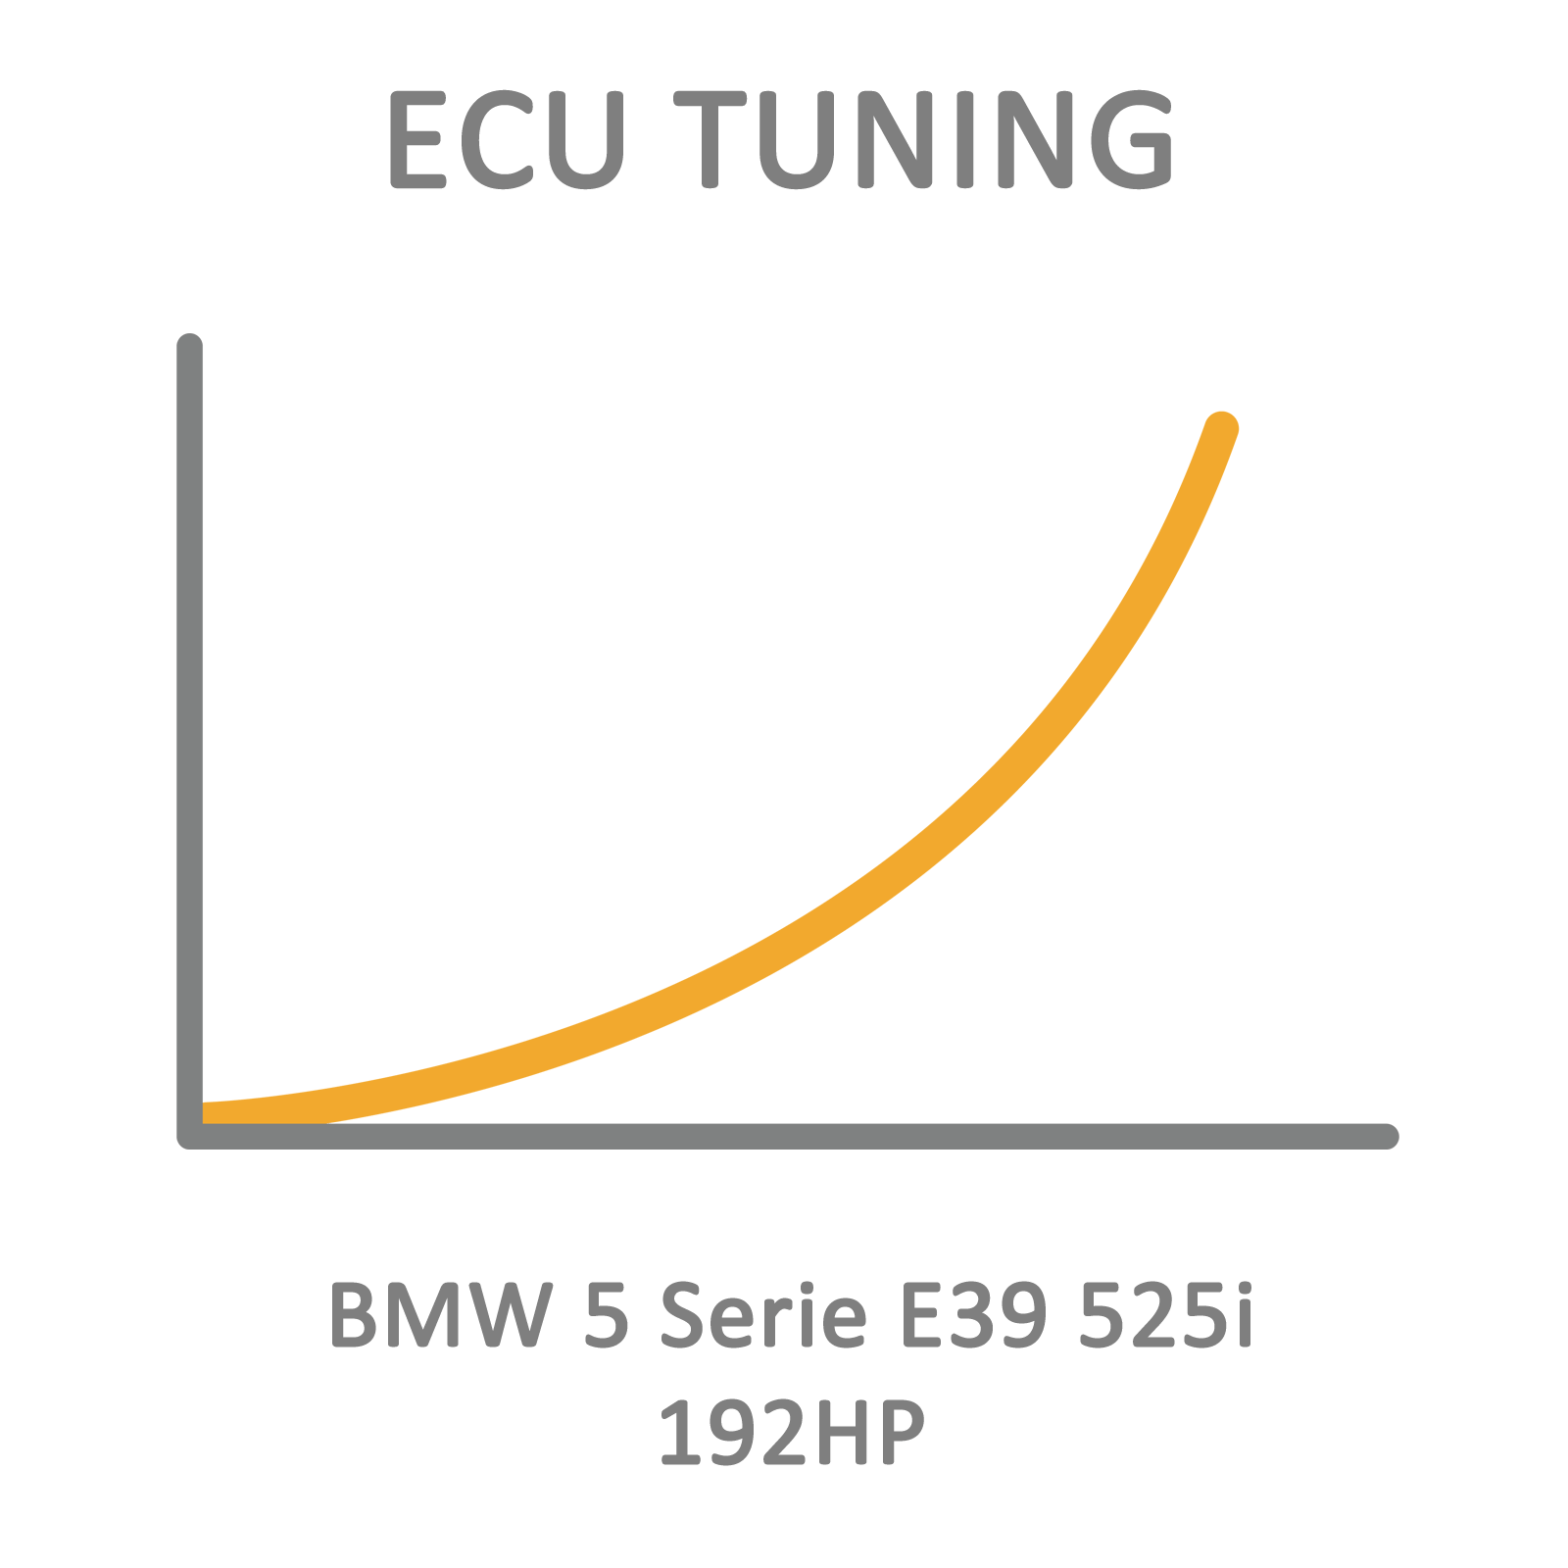 BMW 5 Series E39 525i 192HP ECU Tuning Remapping Programming